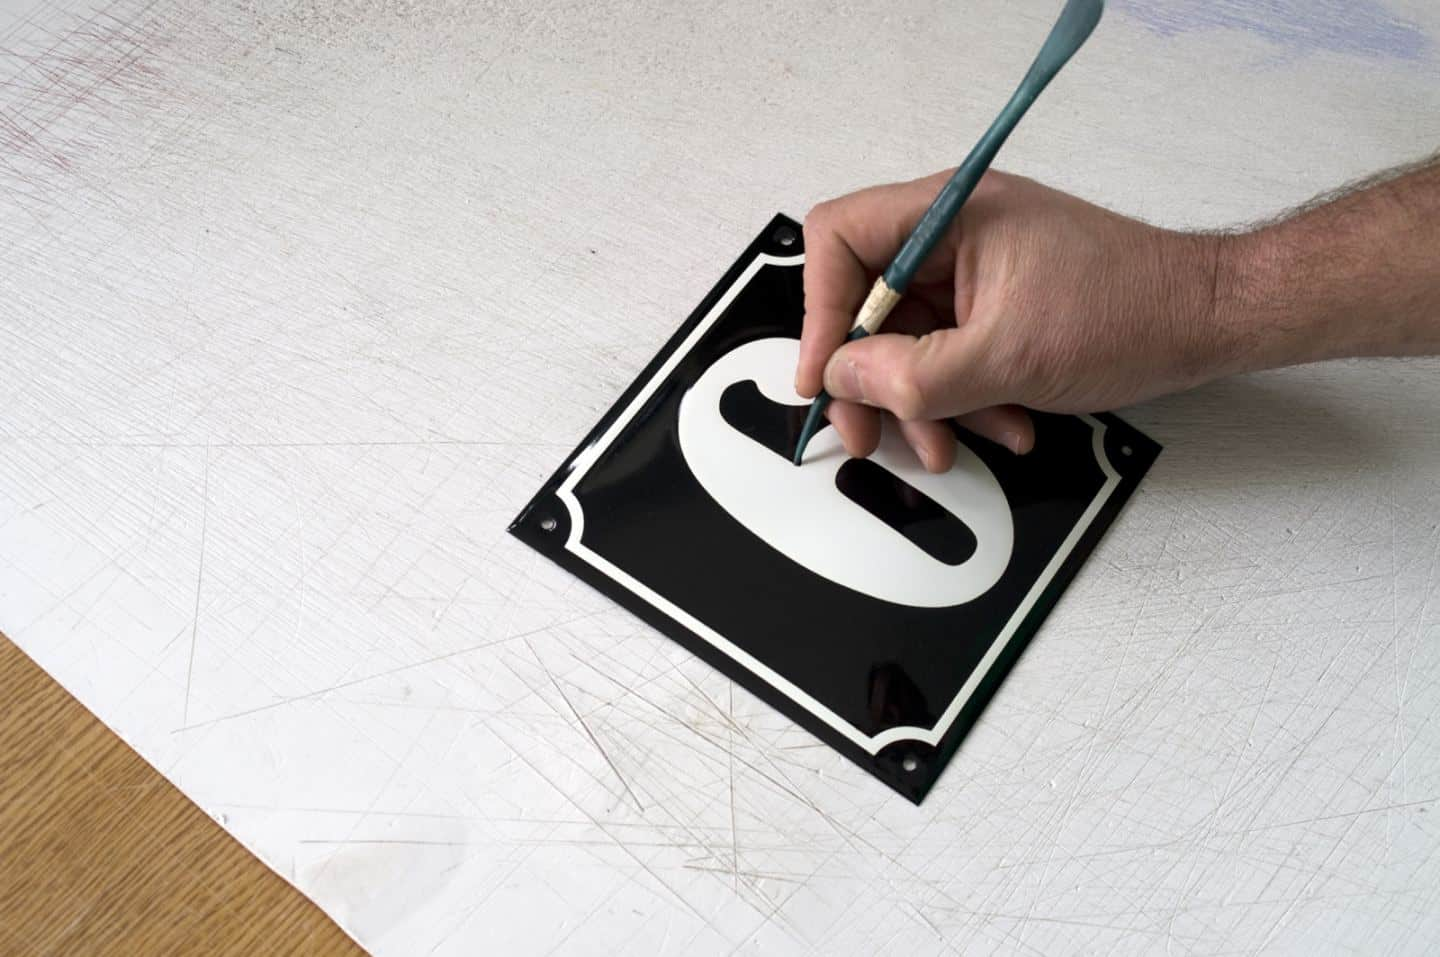 Hand-painting enamel signs for homes and businesses at Ramsign